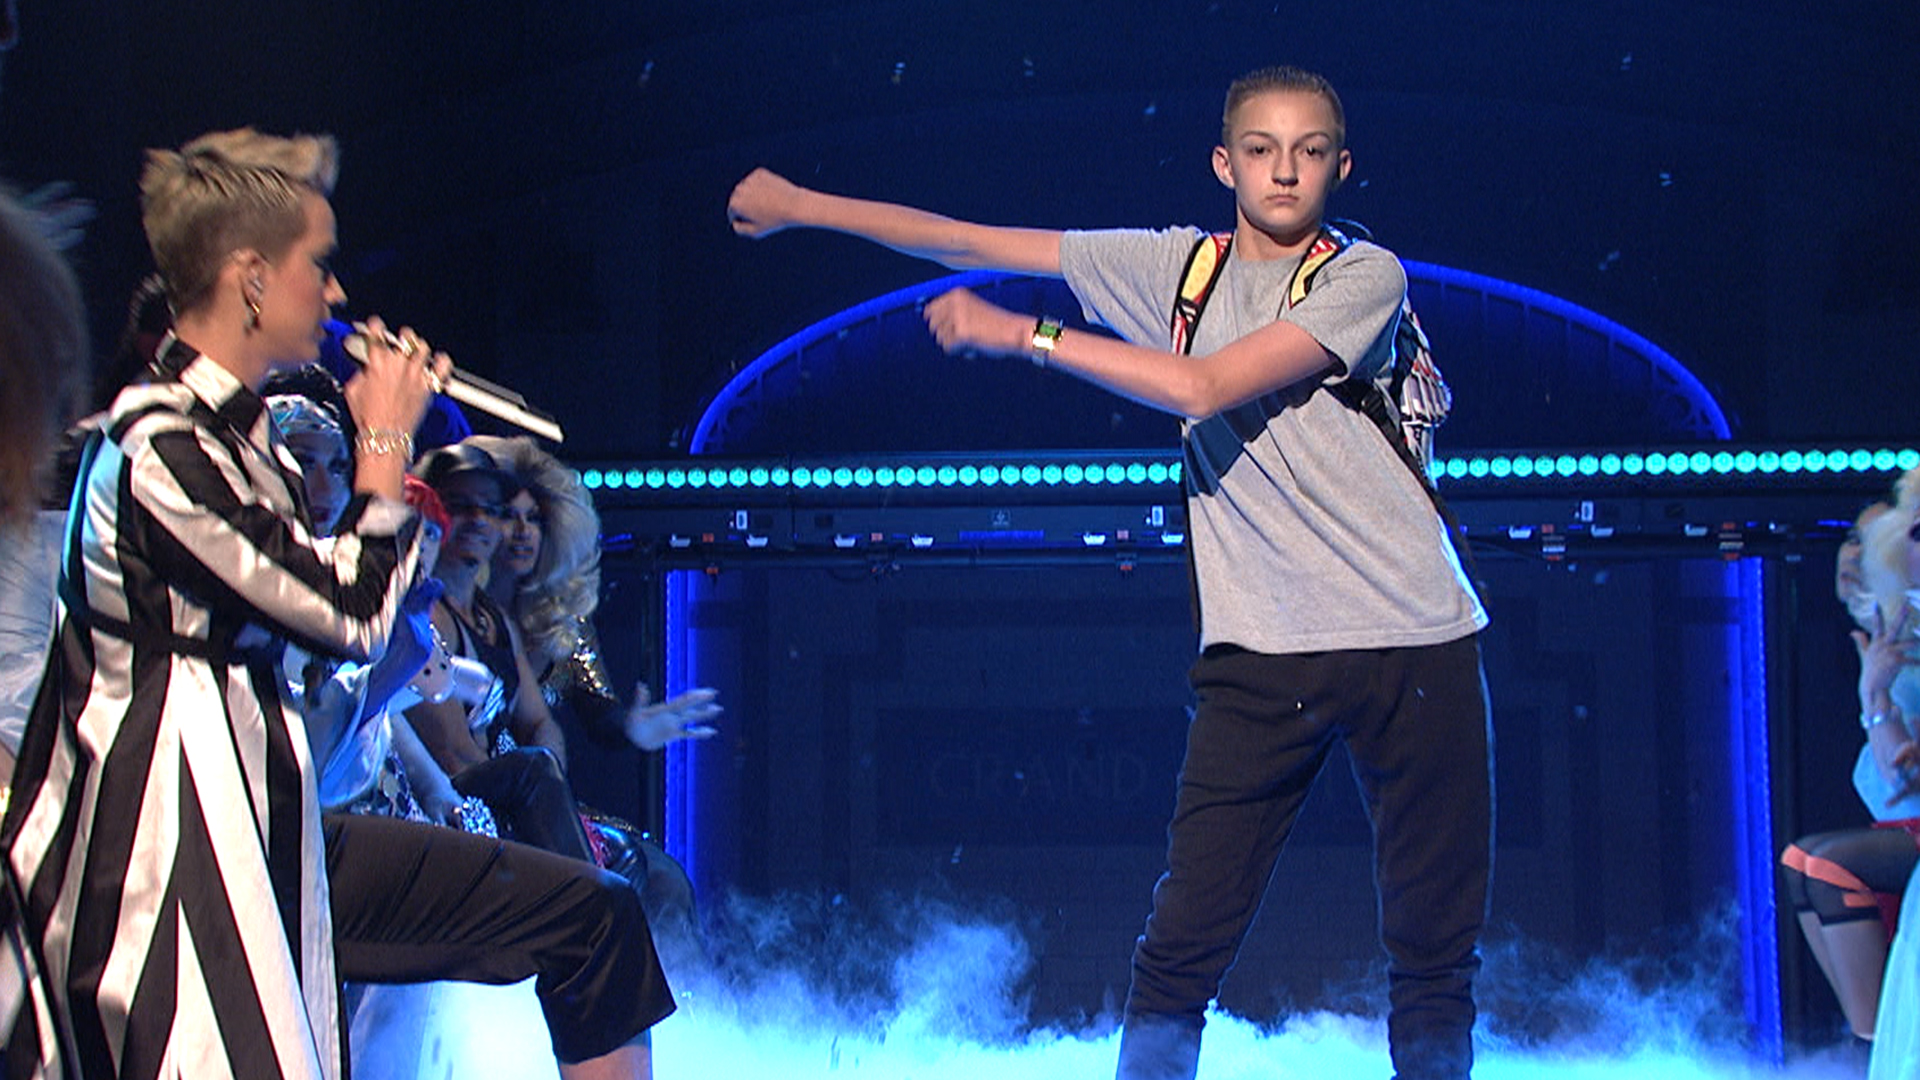 Watch Snl Online >> 'Backpack kid' steals the show at Katy Perry's 'SNL ...